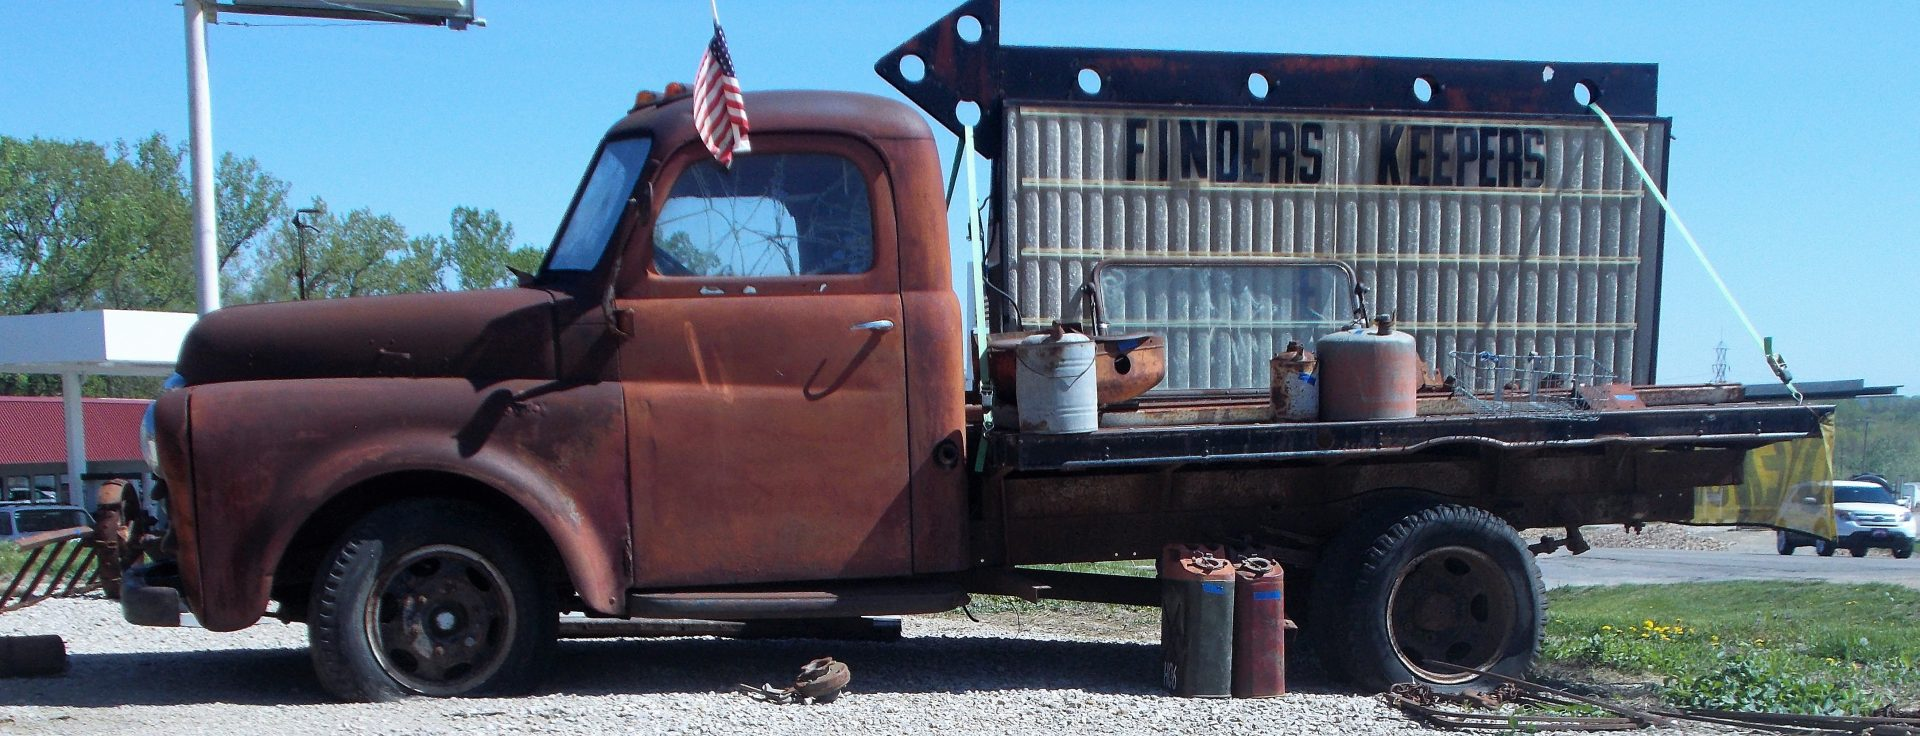 Finders Keepers antique truck